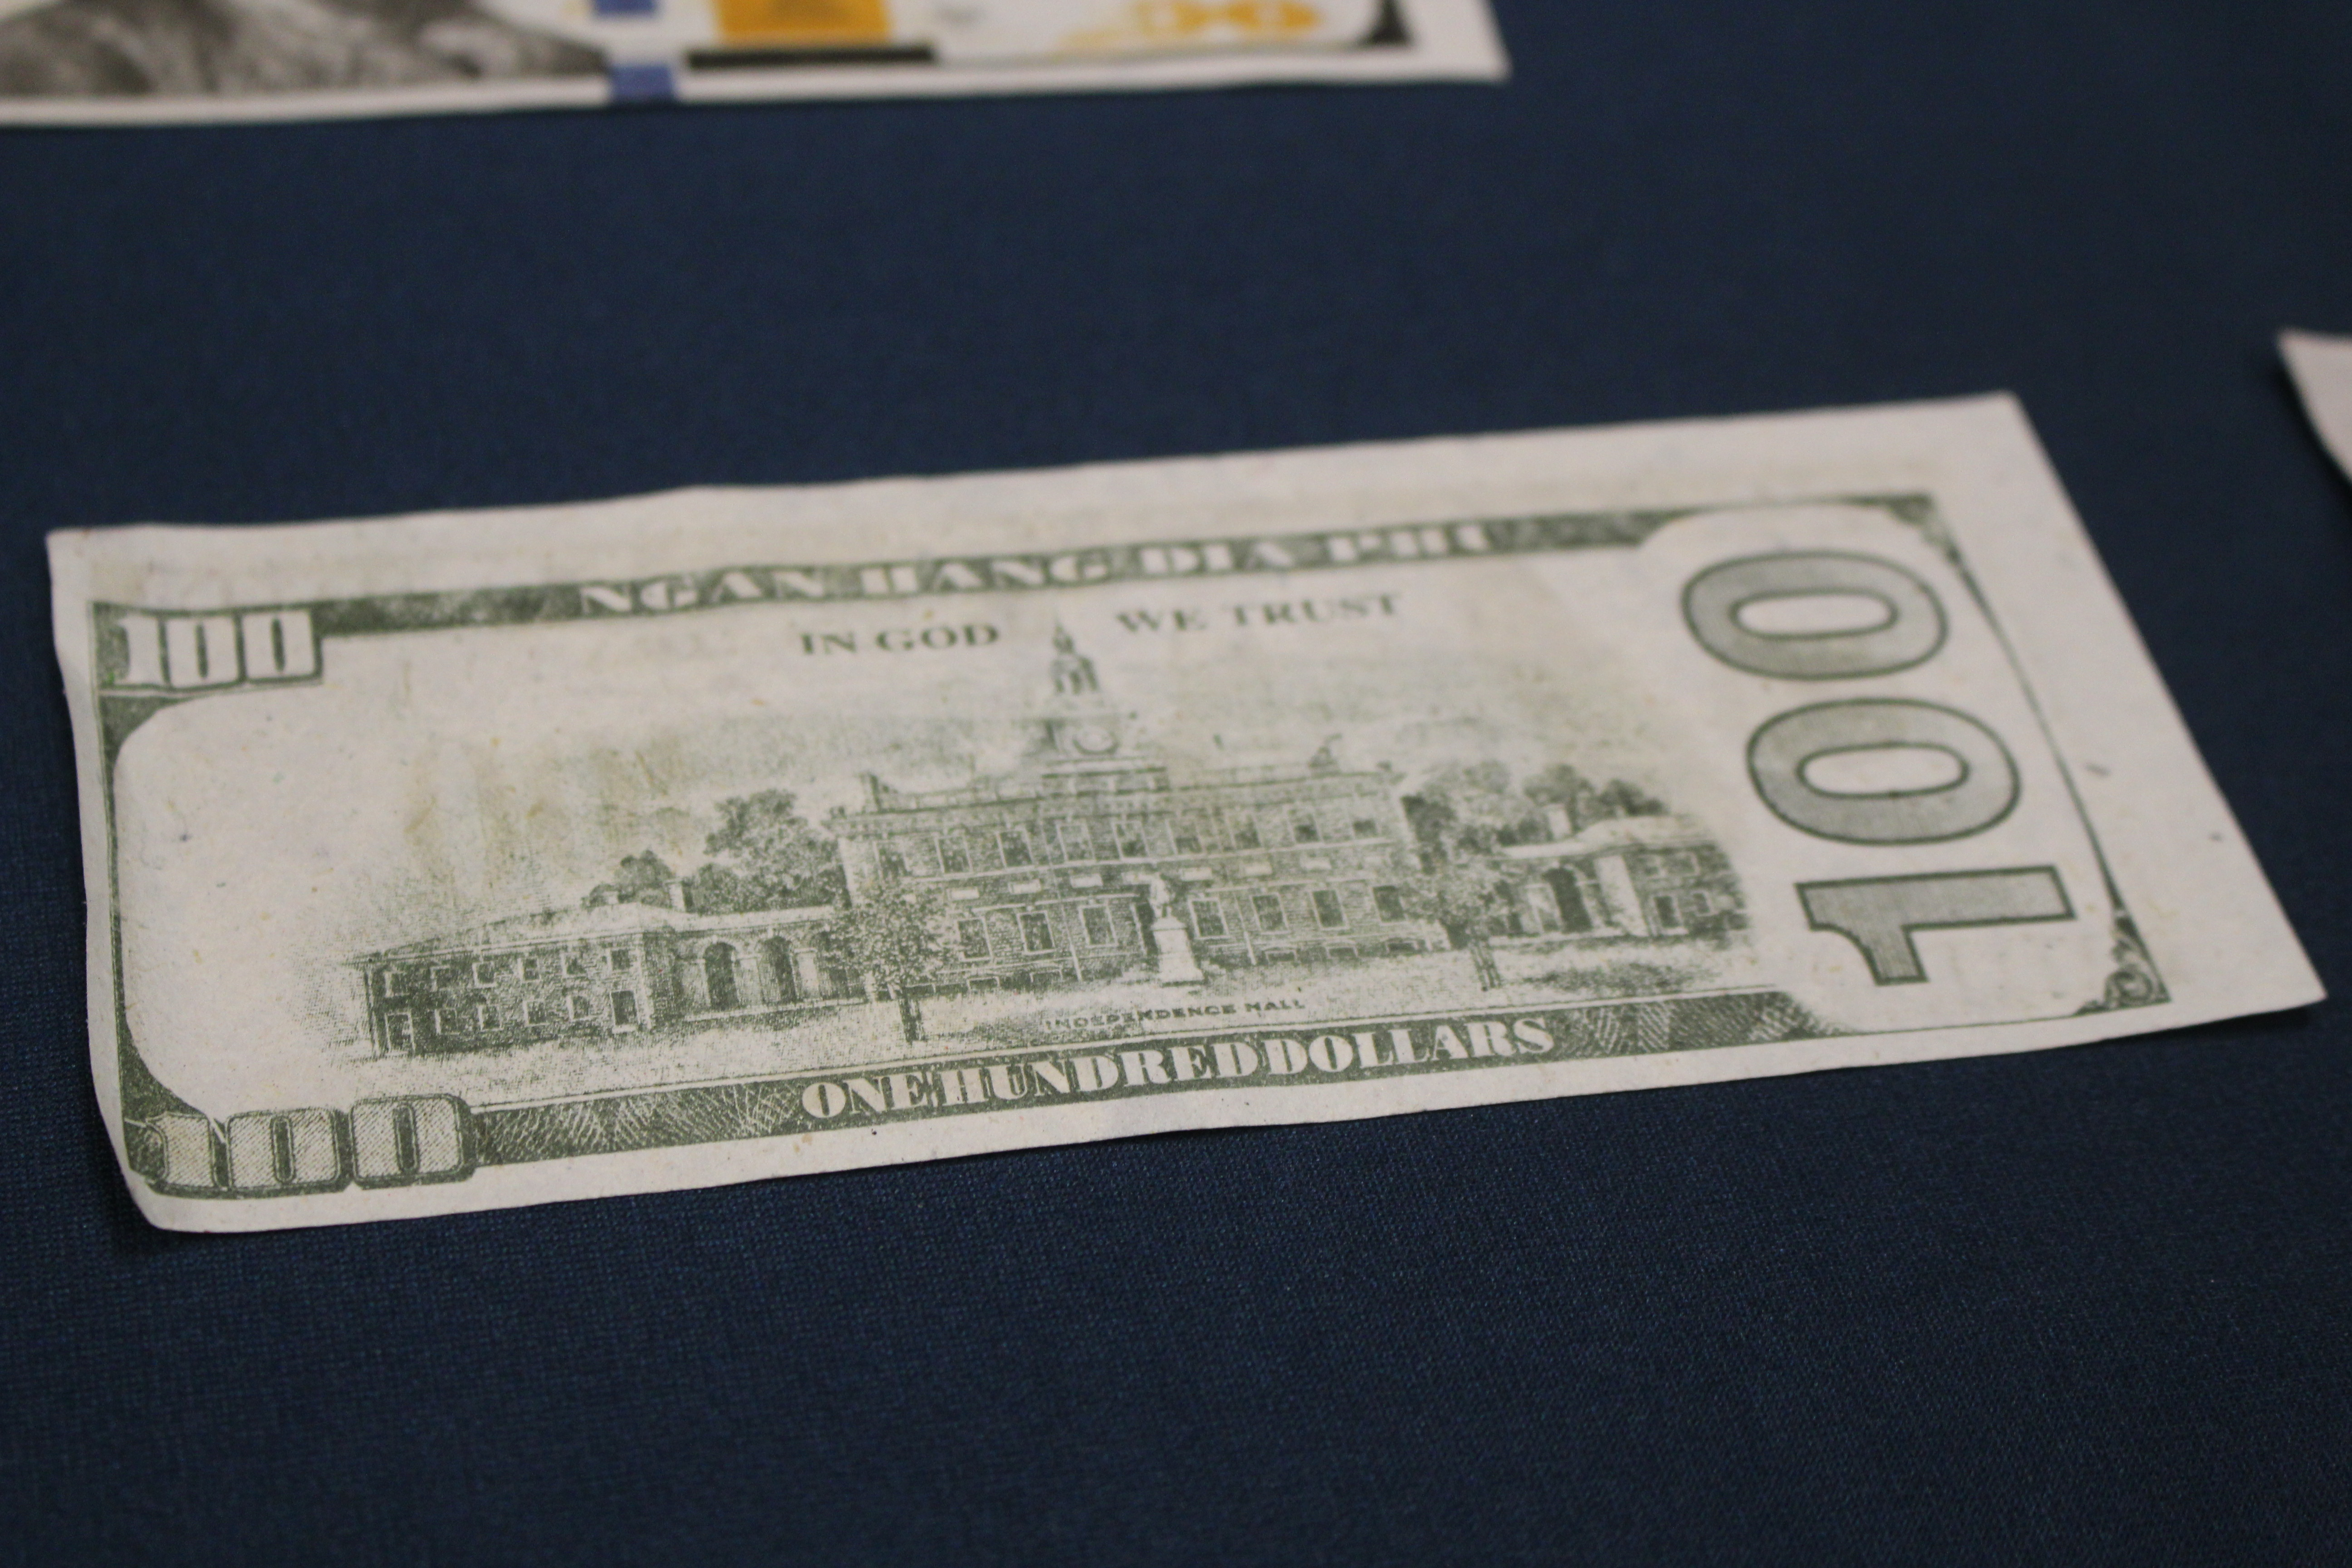 Counterfeit money found by the Windsor Police Service on display at media conference, December 1, 2015 (Photo by Maureen Revait)